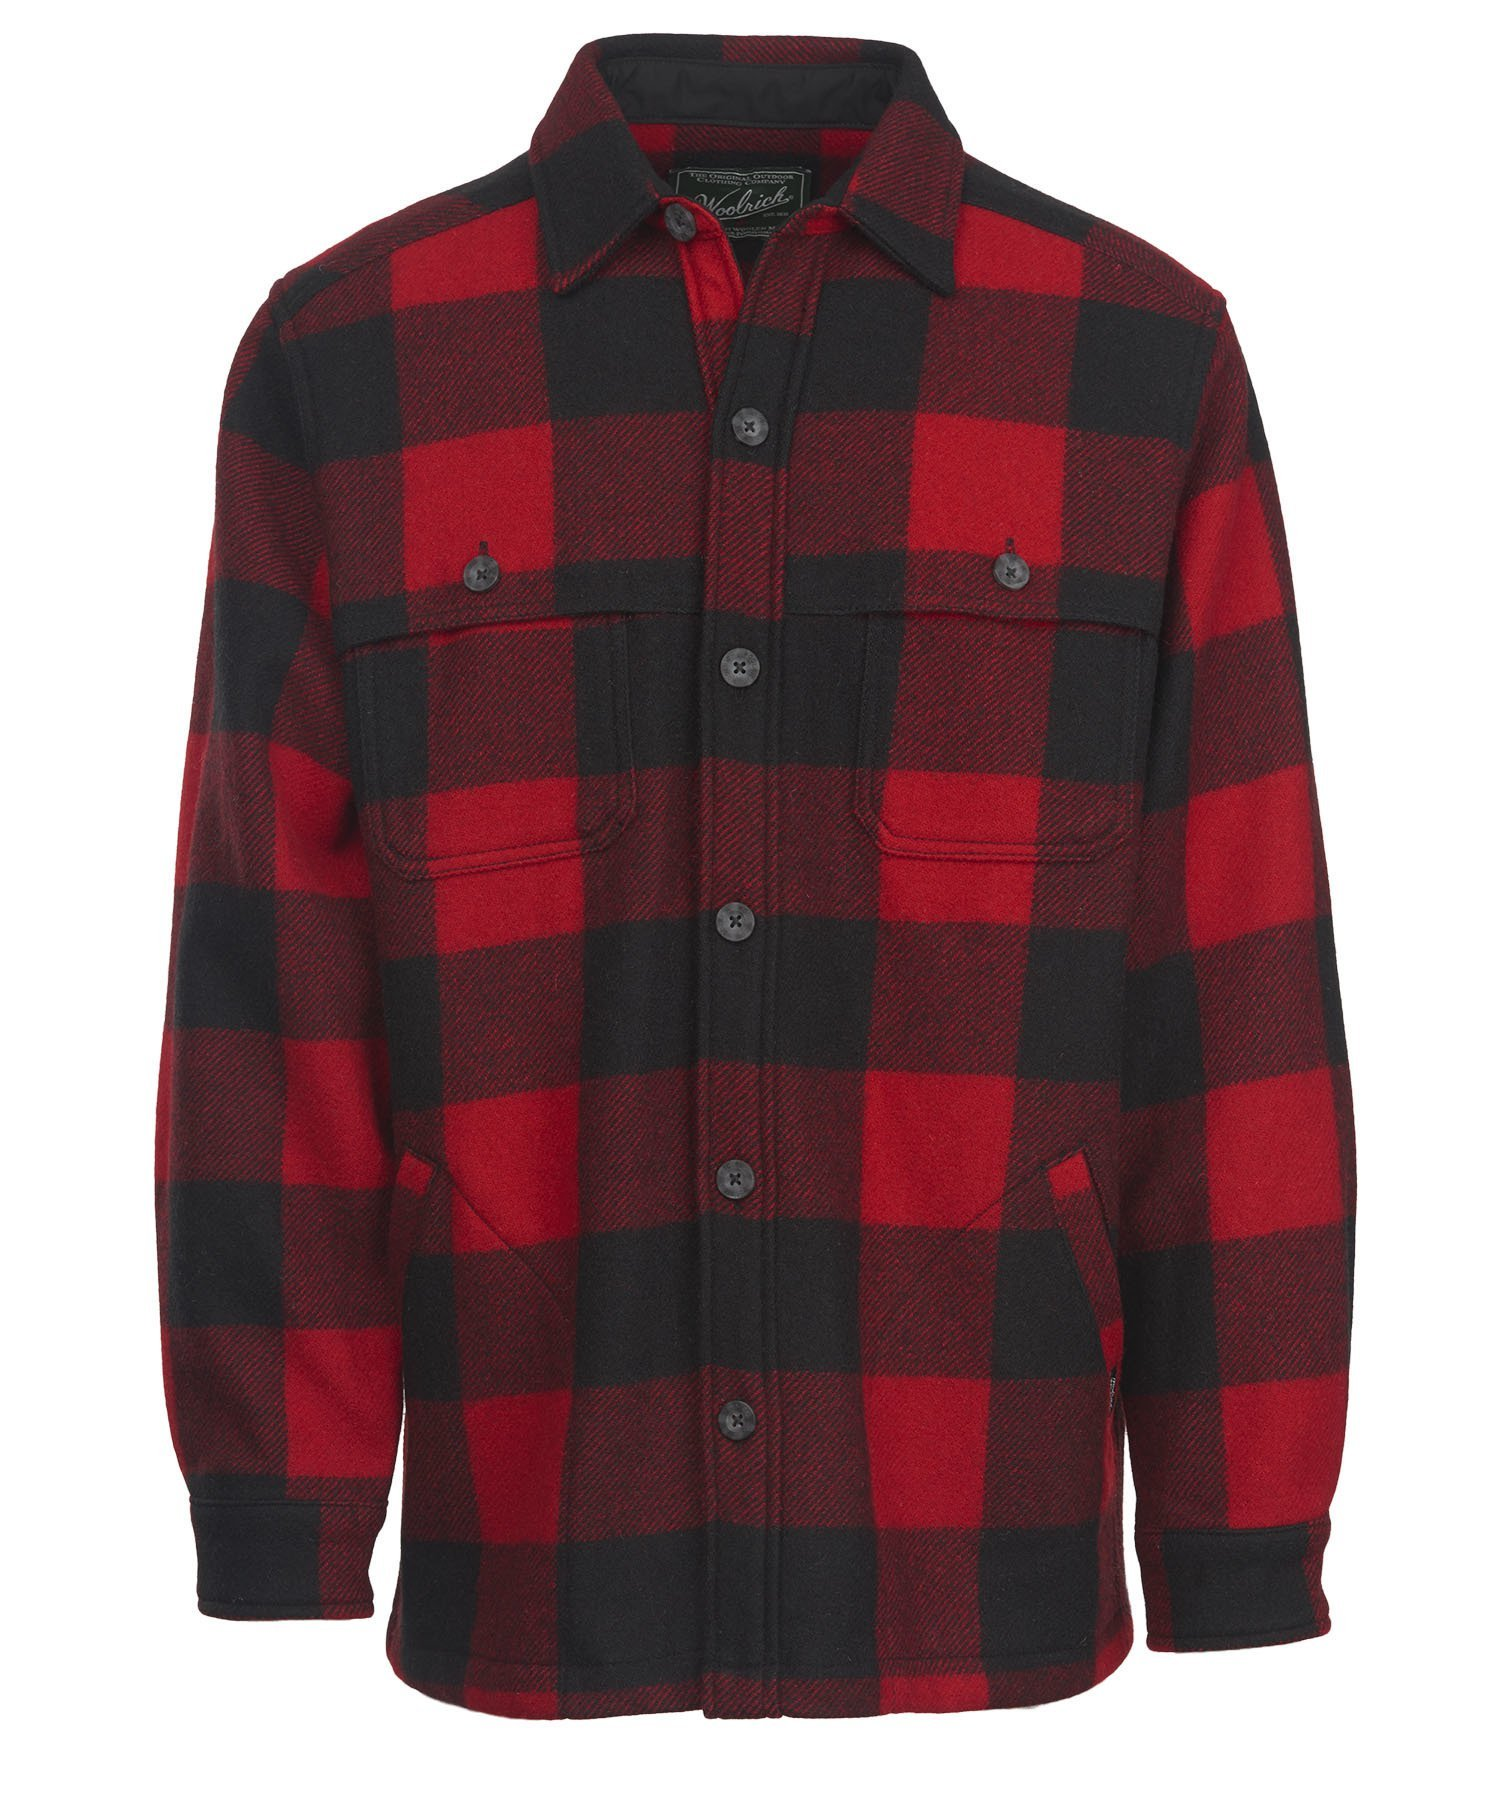 Woolrich Men's Wool Stag Shirt Jacket, Red/Black, XX-Large by Woolrich